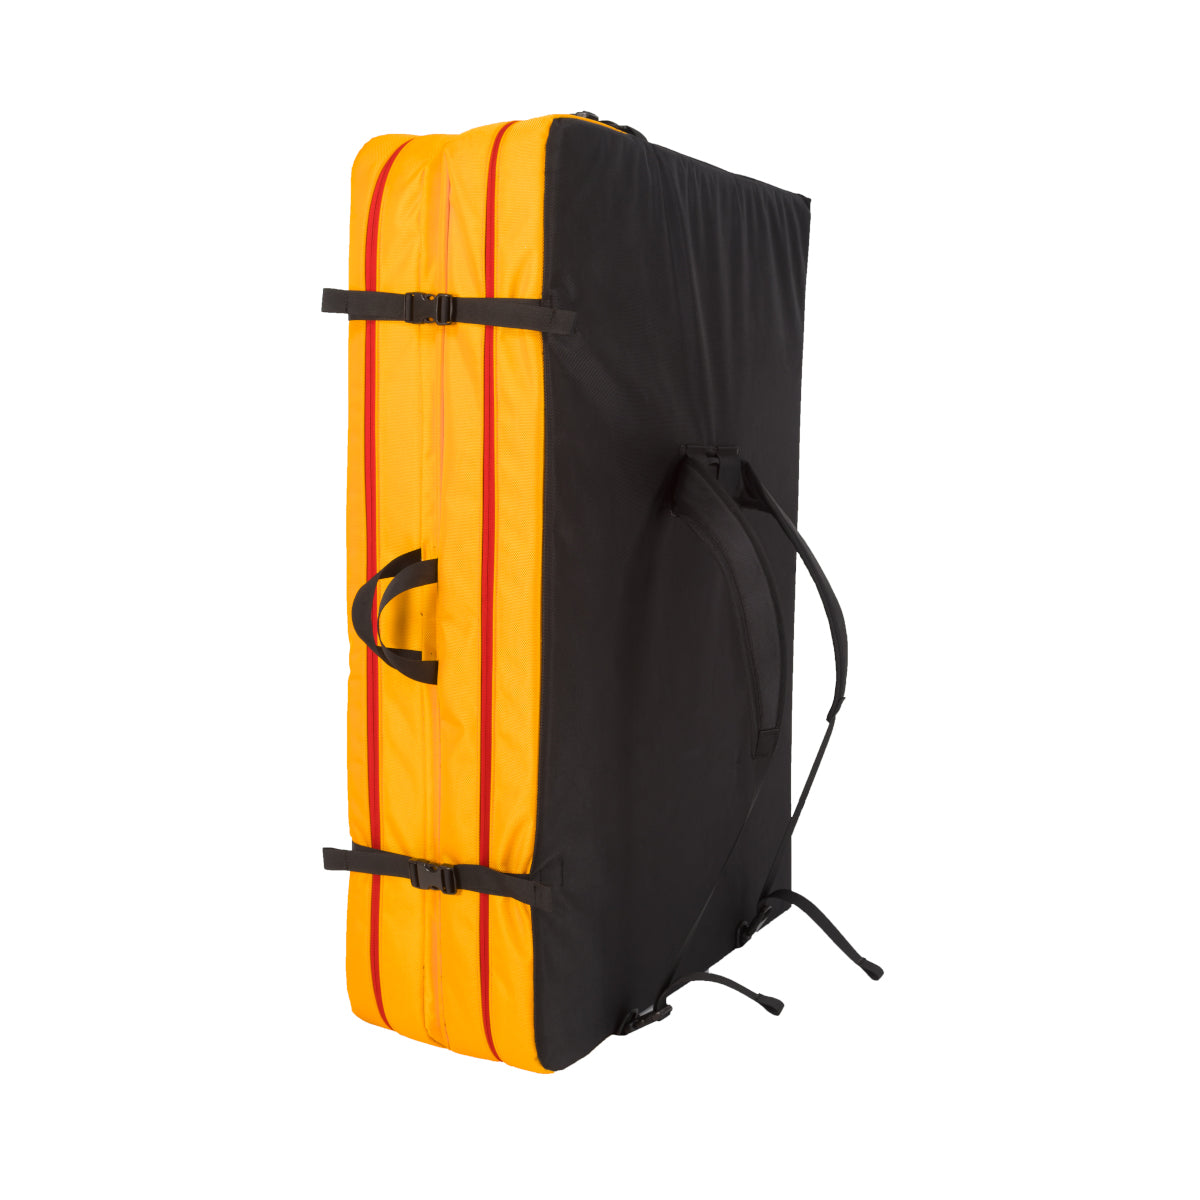 La Sportiva LaSpo Crash Pad, front/side view showing carry straps